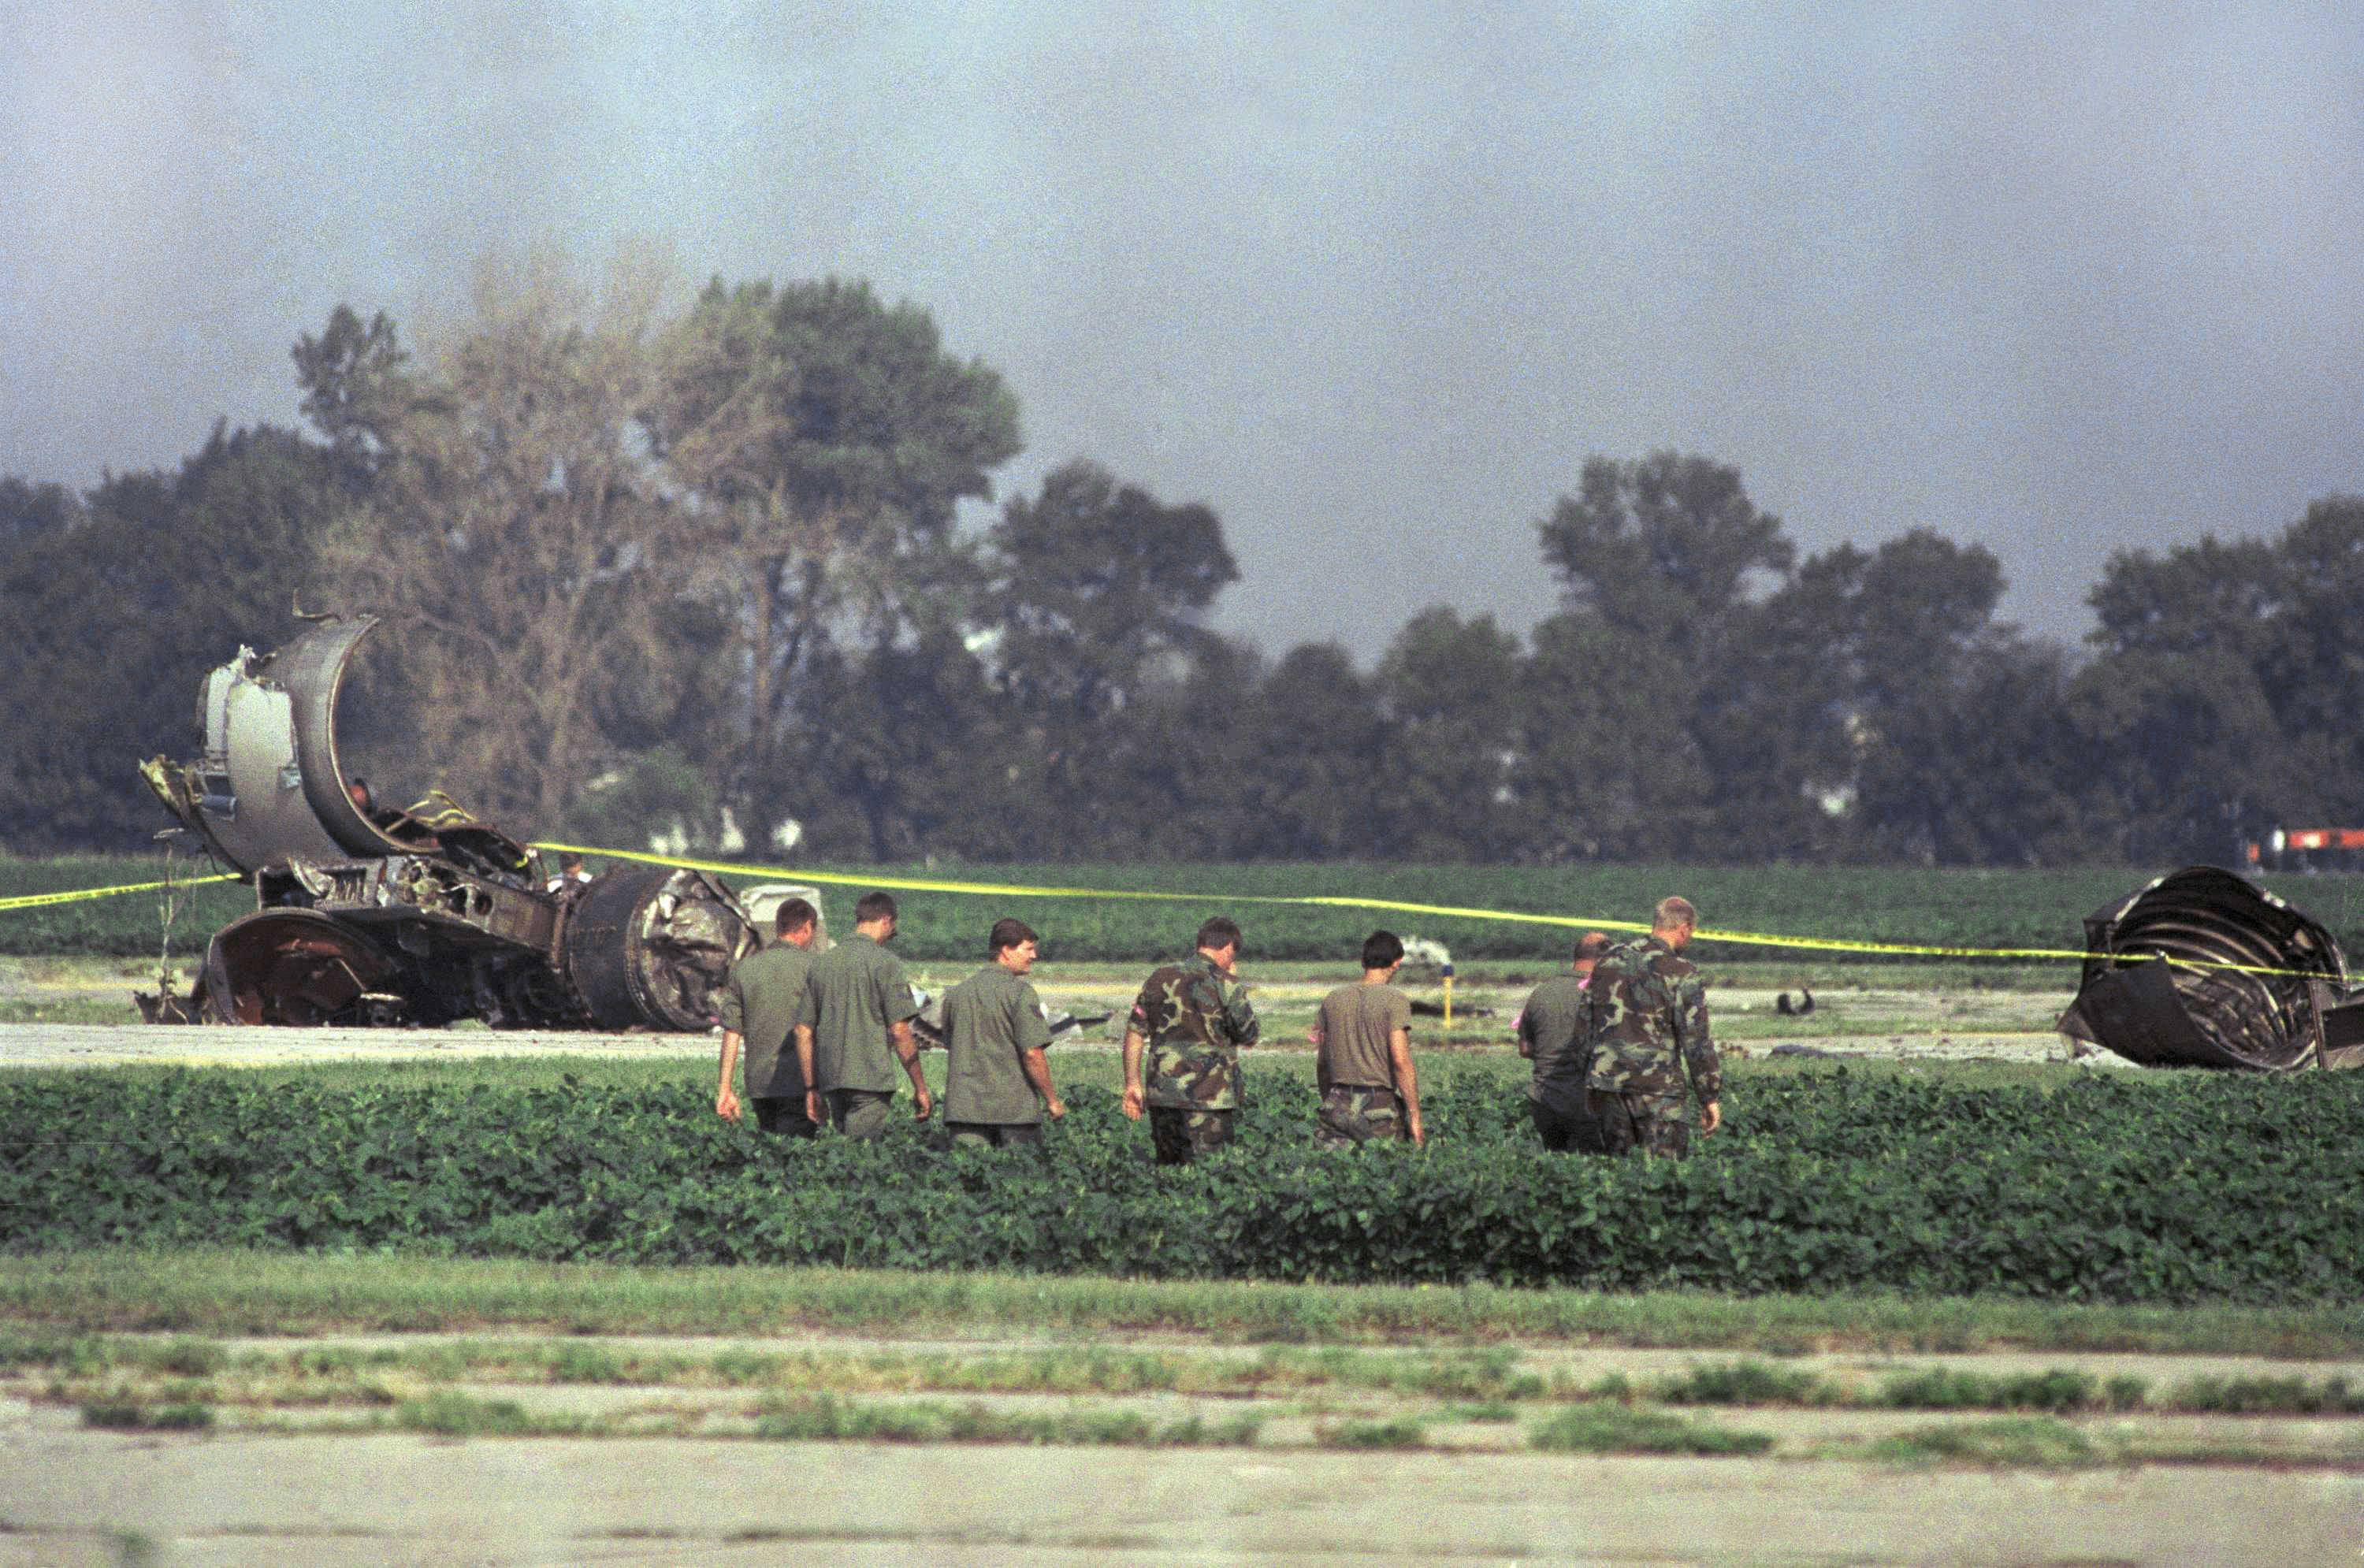 Iowa Air National Guard soldiers search a bean field near the burned engine of a United Airlines DC-10 after a crash landing at Sioux City Airport, on Wednesday, July 20, 1989, Sioux City, Iowa. The jet was en route to Chicago from Denver when it developed mechanical difficulties and tried to make an emergency landing when it crashed and burned.